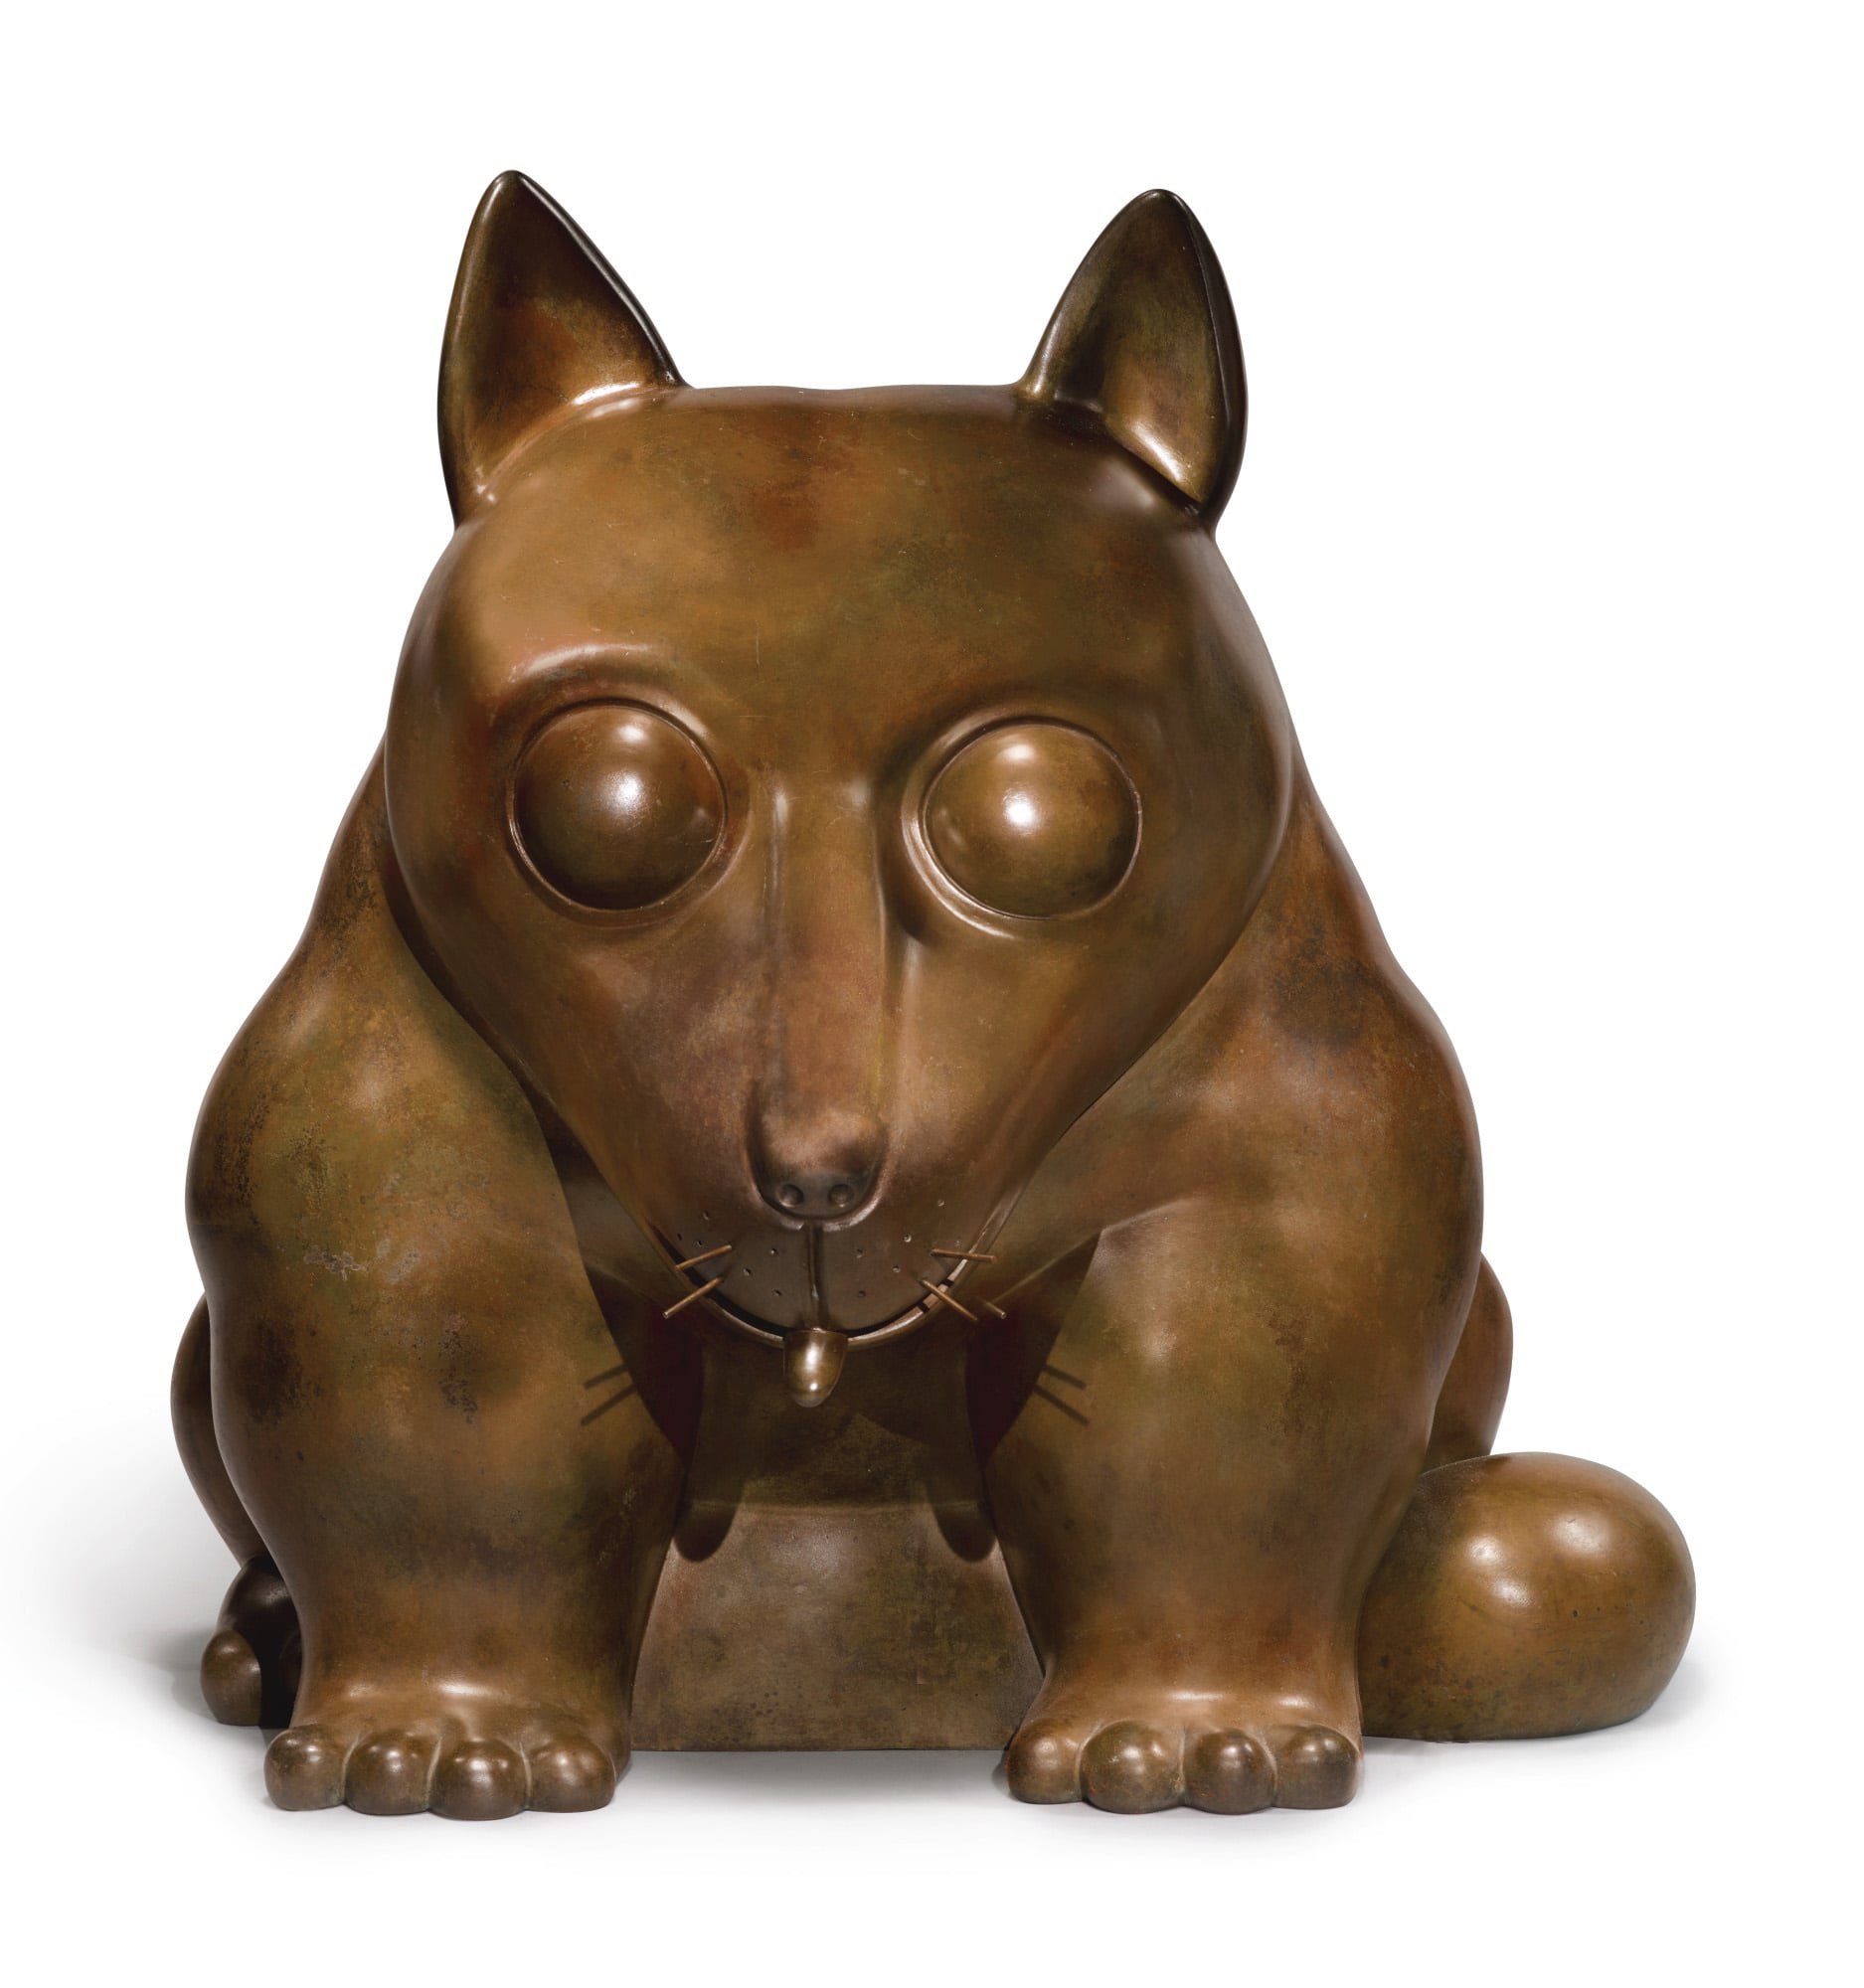 Bronze sculpture of a dog by Fernando Botero